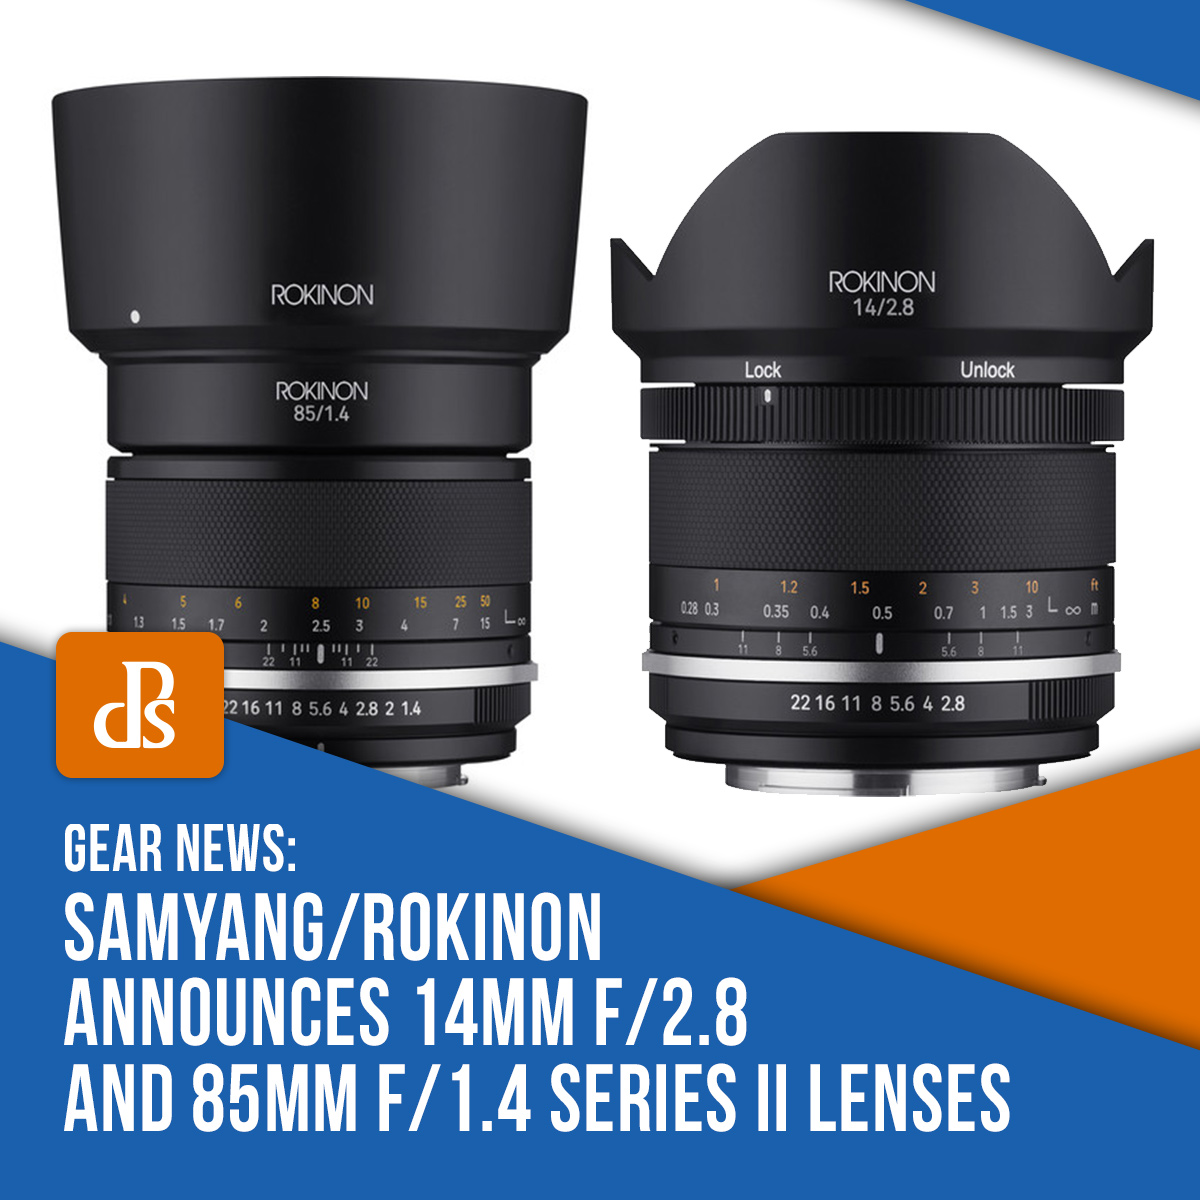 dps-samyang-series-II-lenses